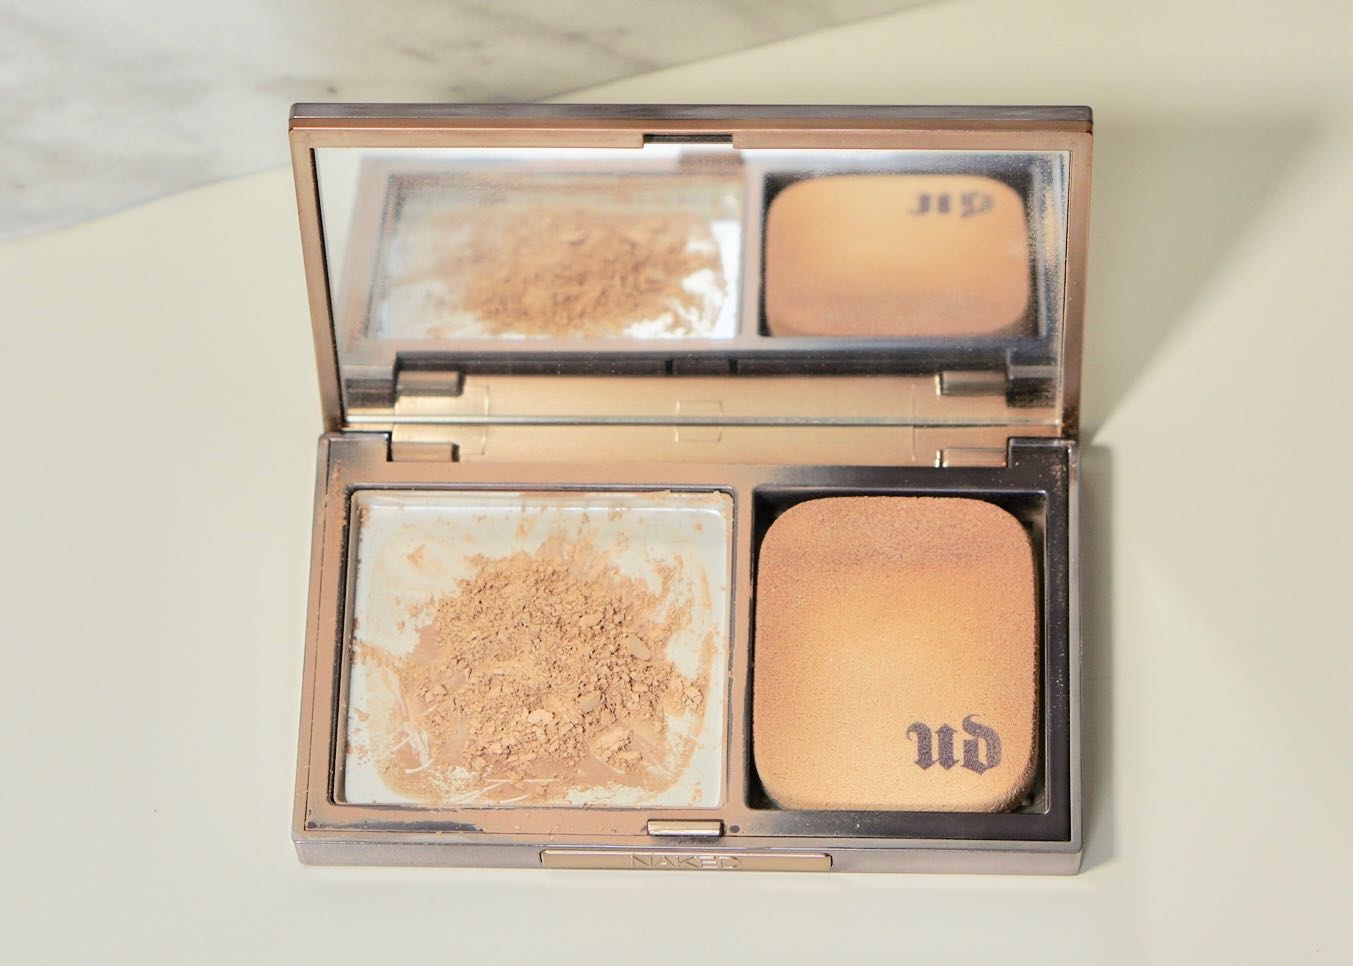 Urban Decay Naked Skin Ultra Definition Powder Foundation - Light NeutralDSC00647.jpg